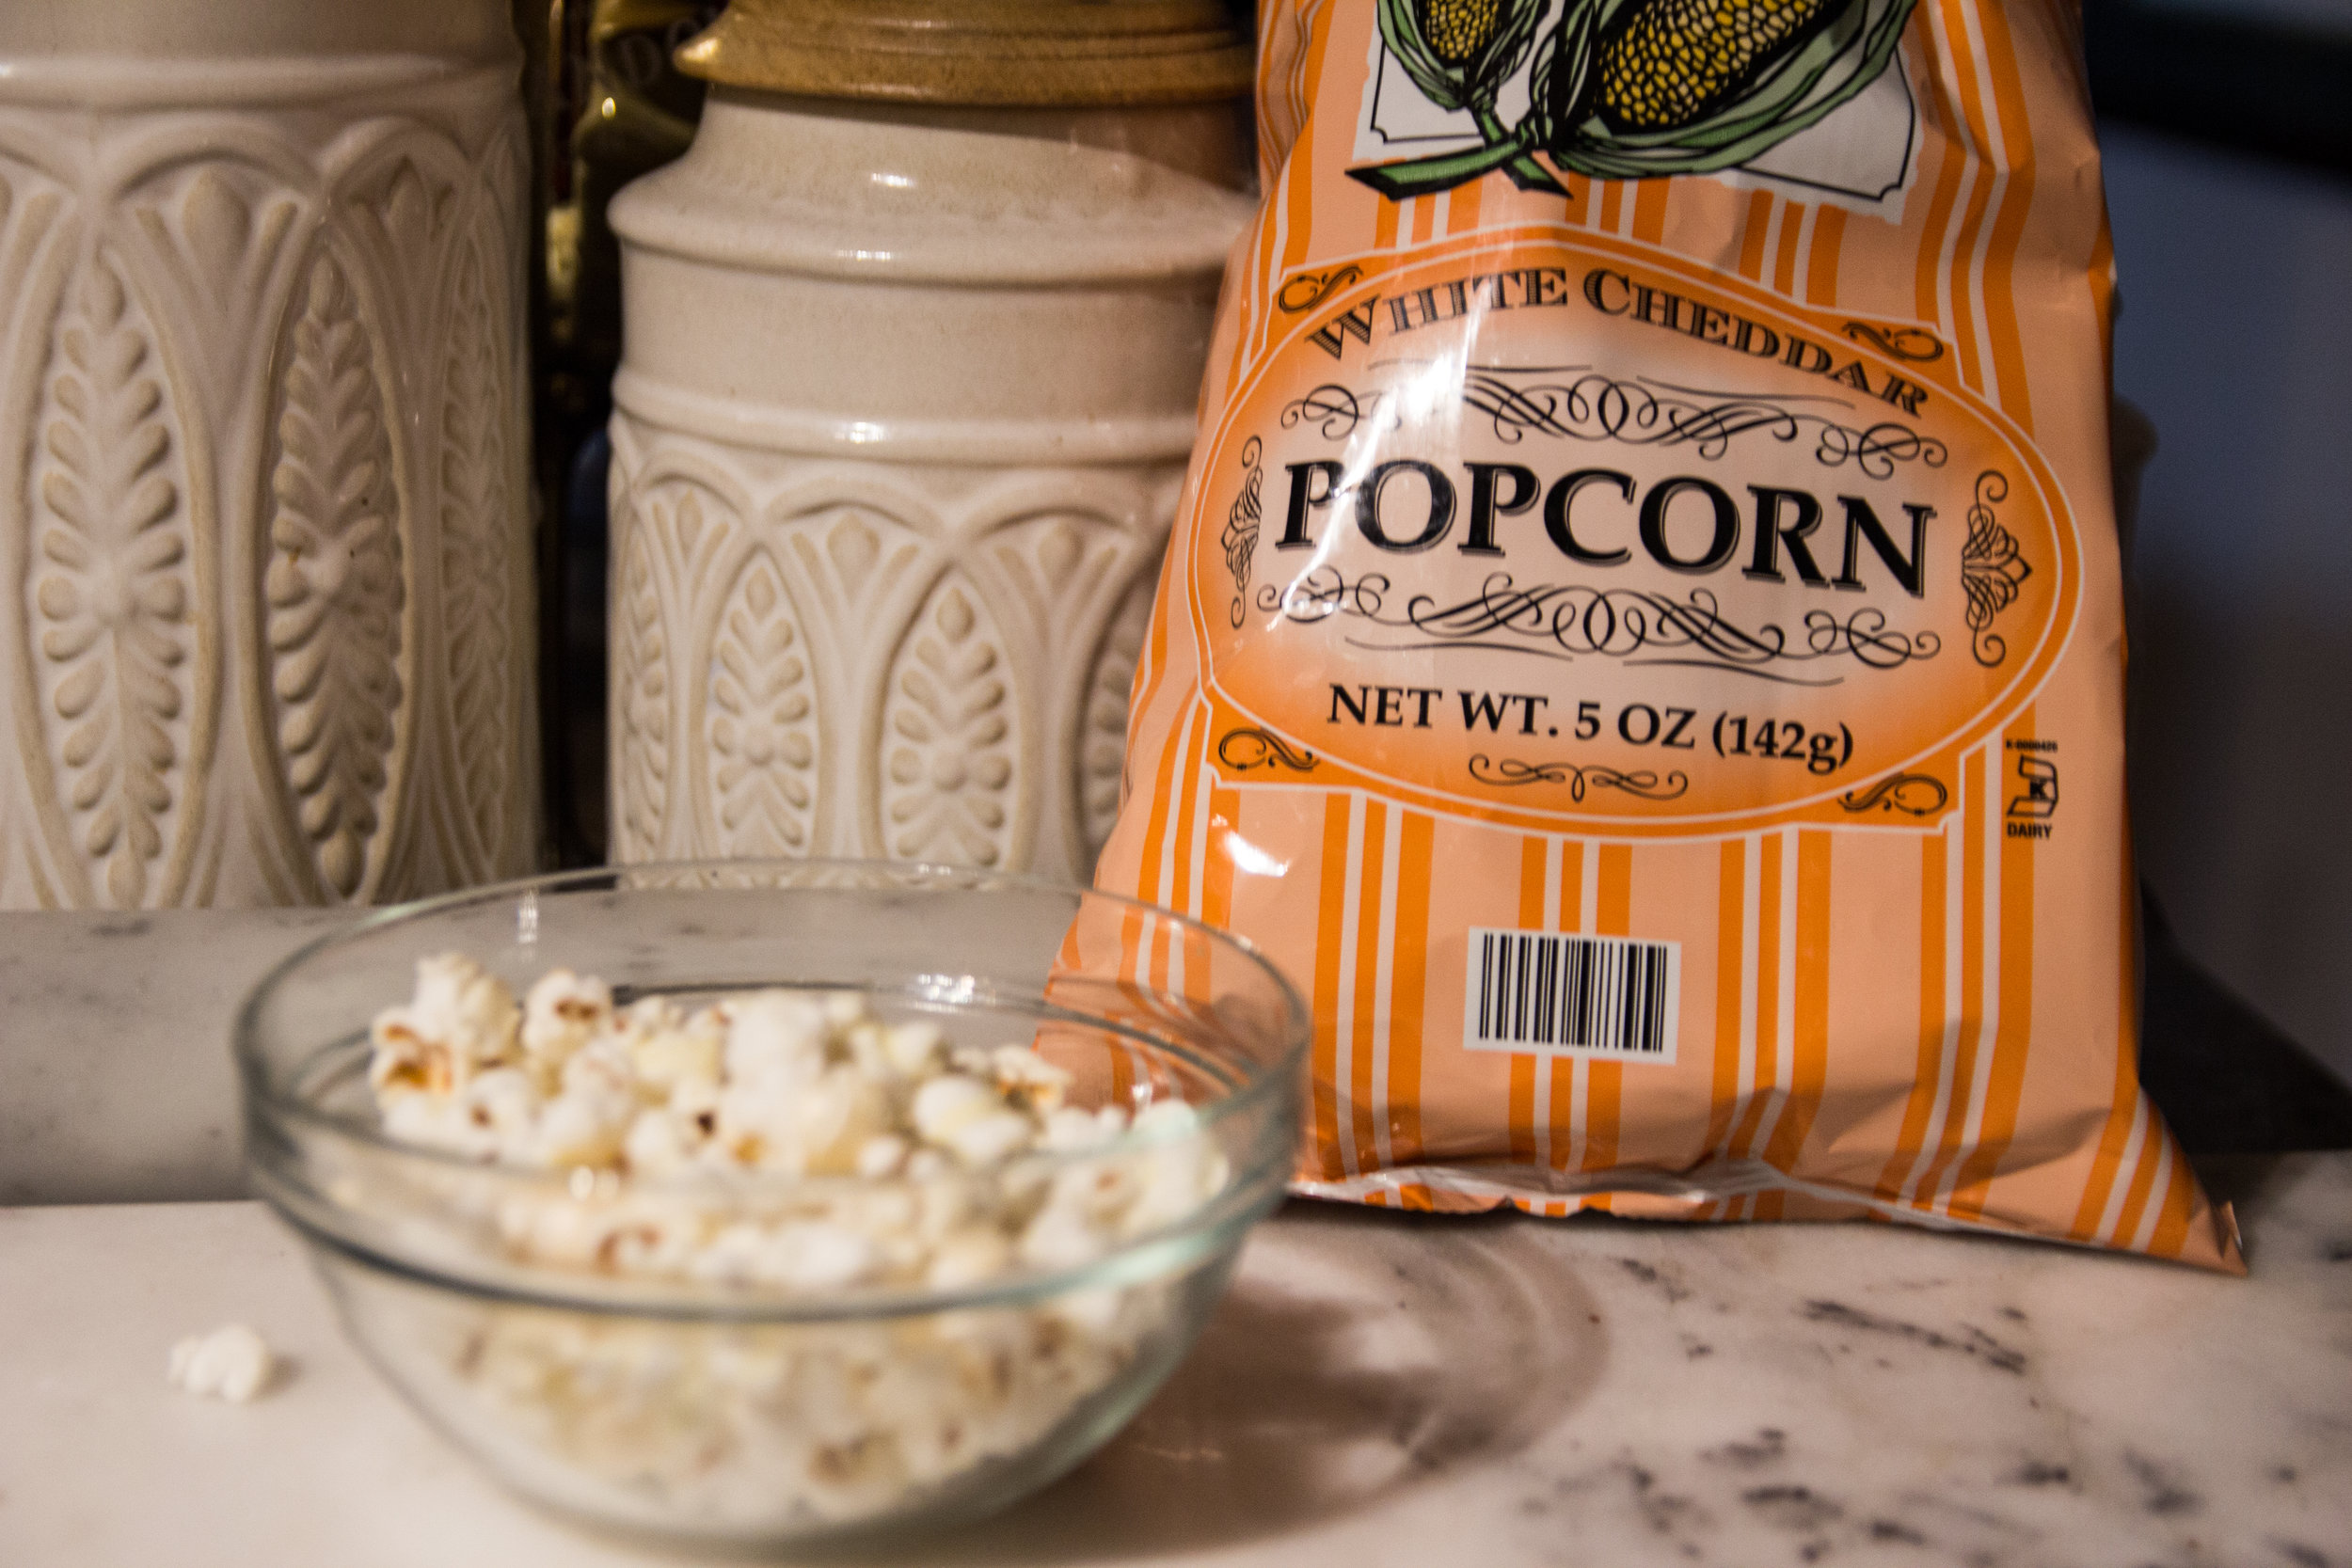 best things to buy from trader joe's, what to buy from trader joe's, favorite 13 items from Trader Joe's,  popcorn